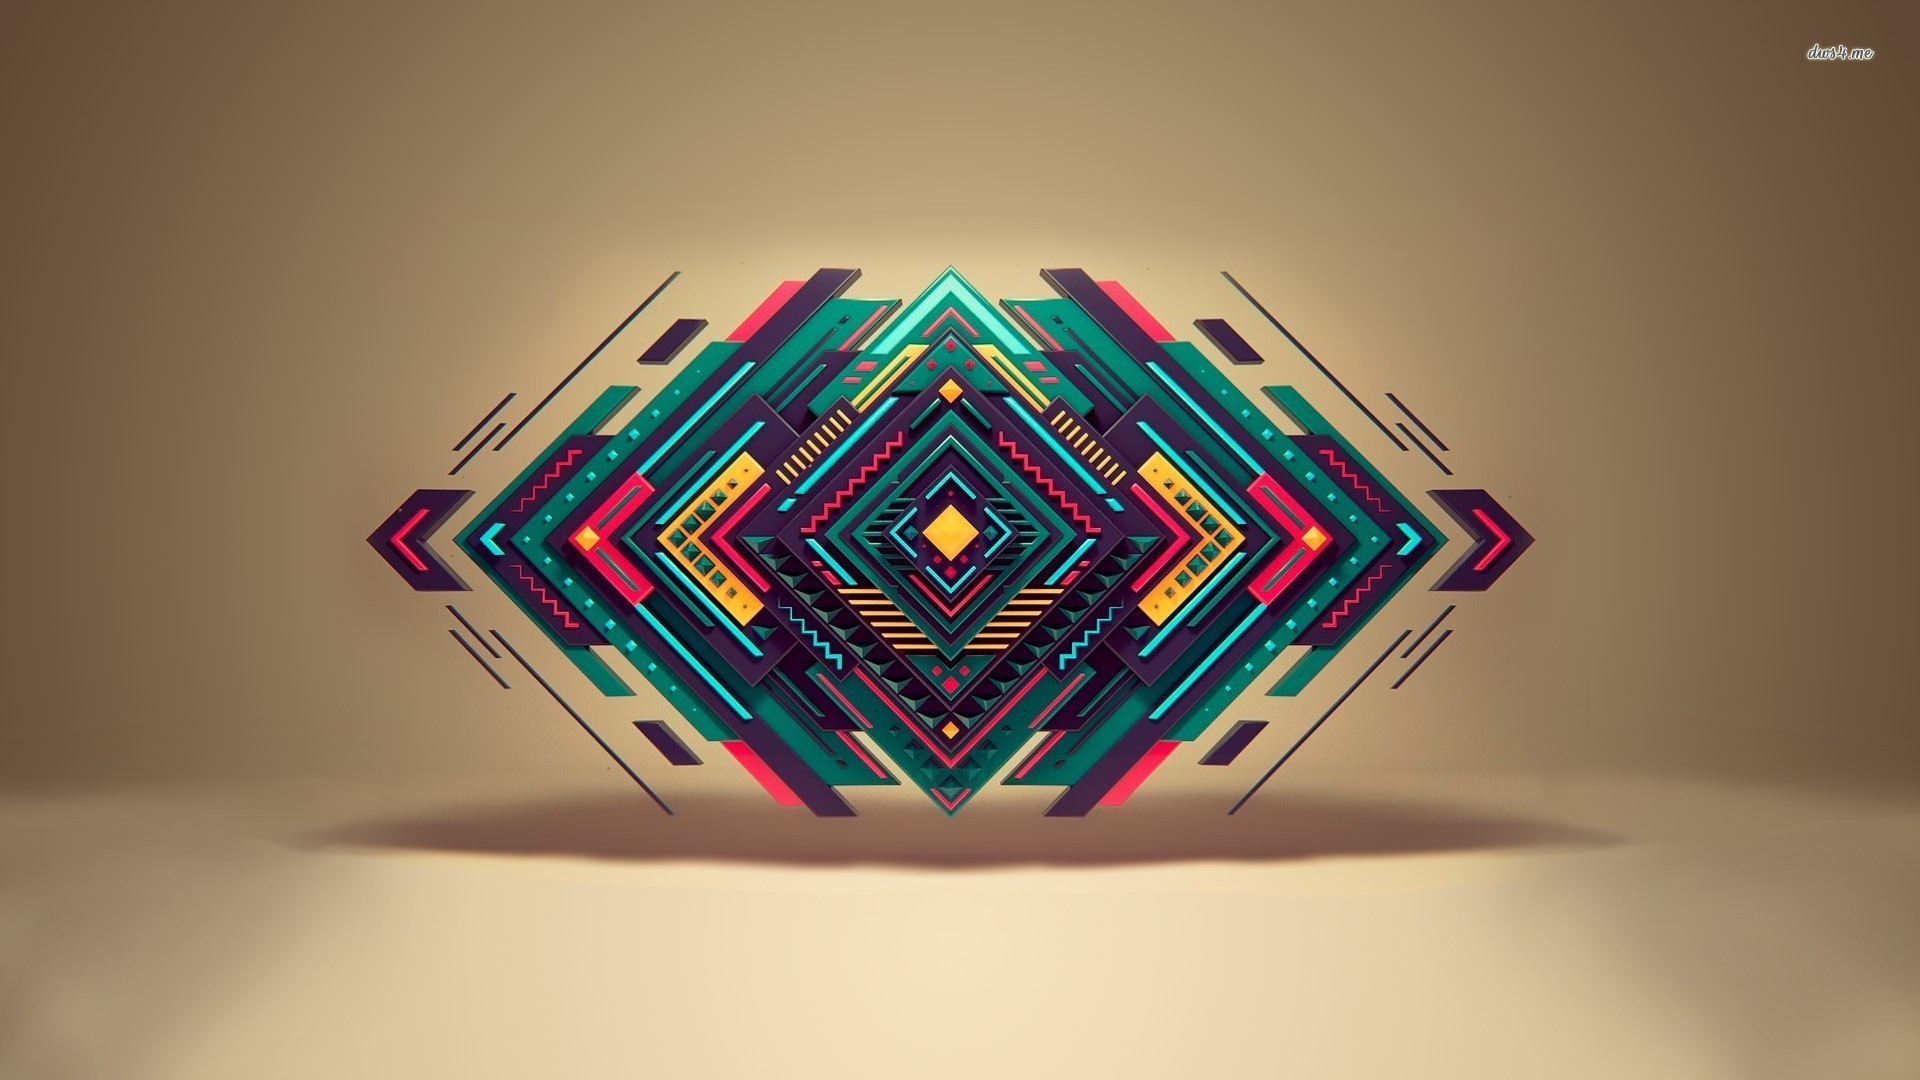 Res: 1920x1080, Geometric Shapes